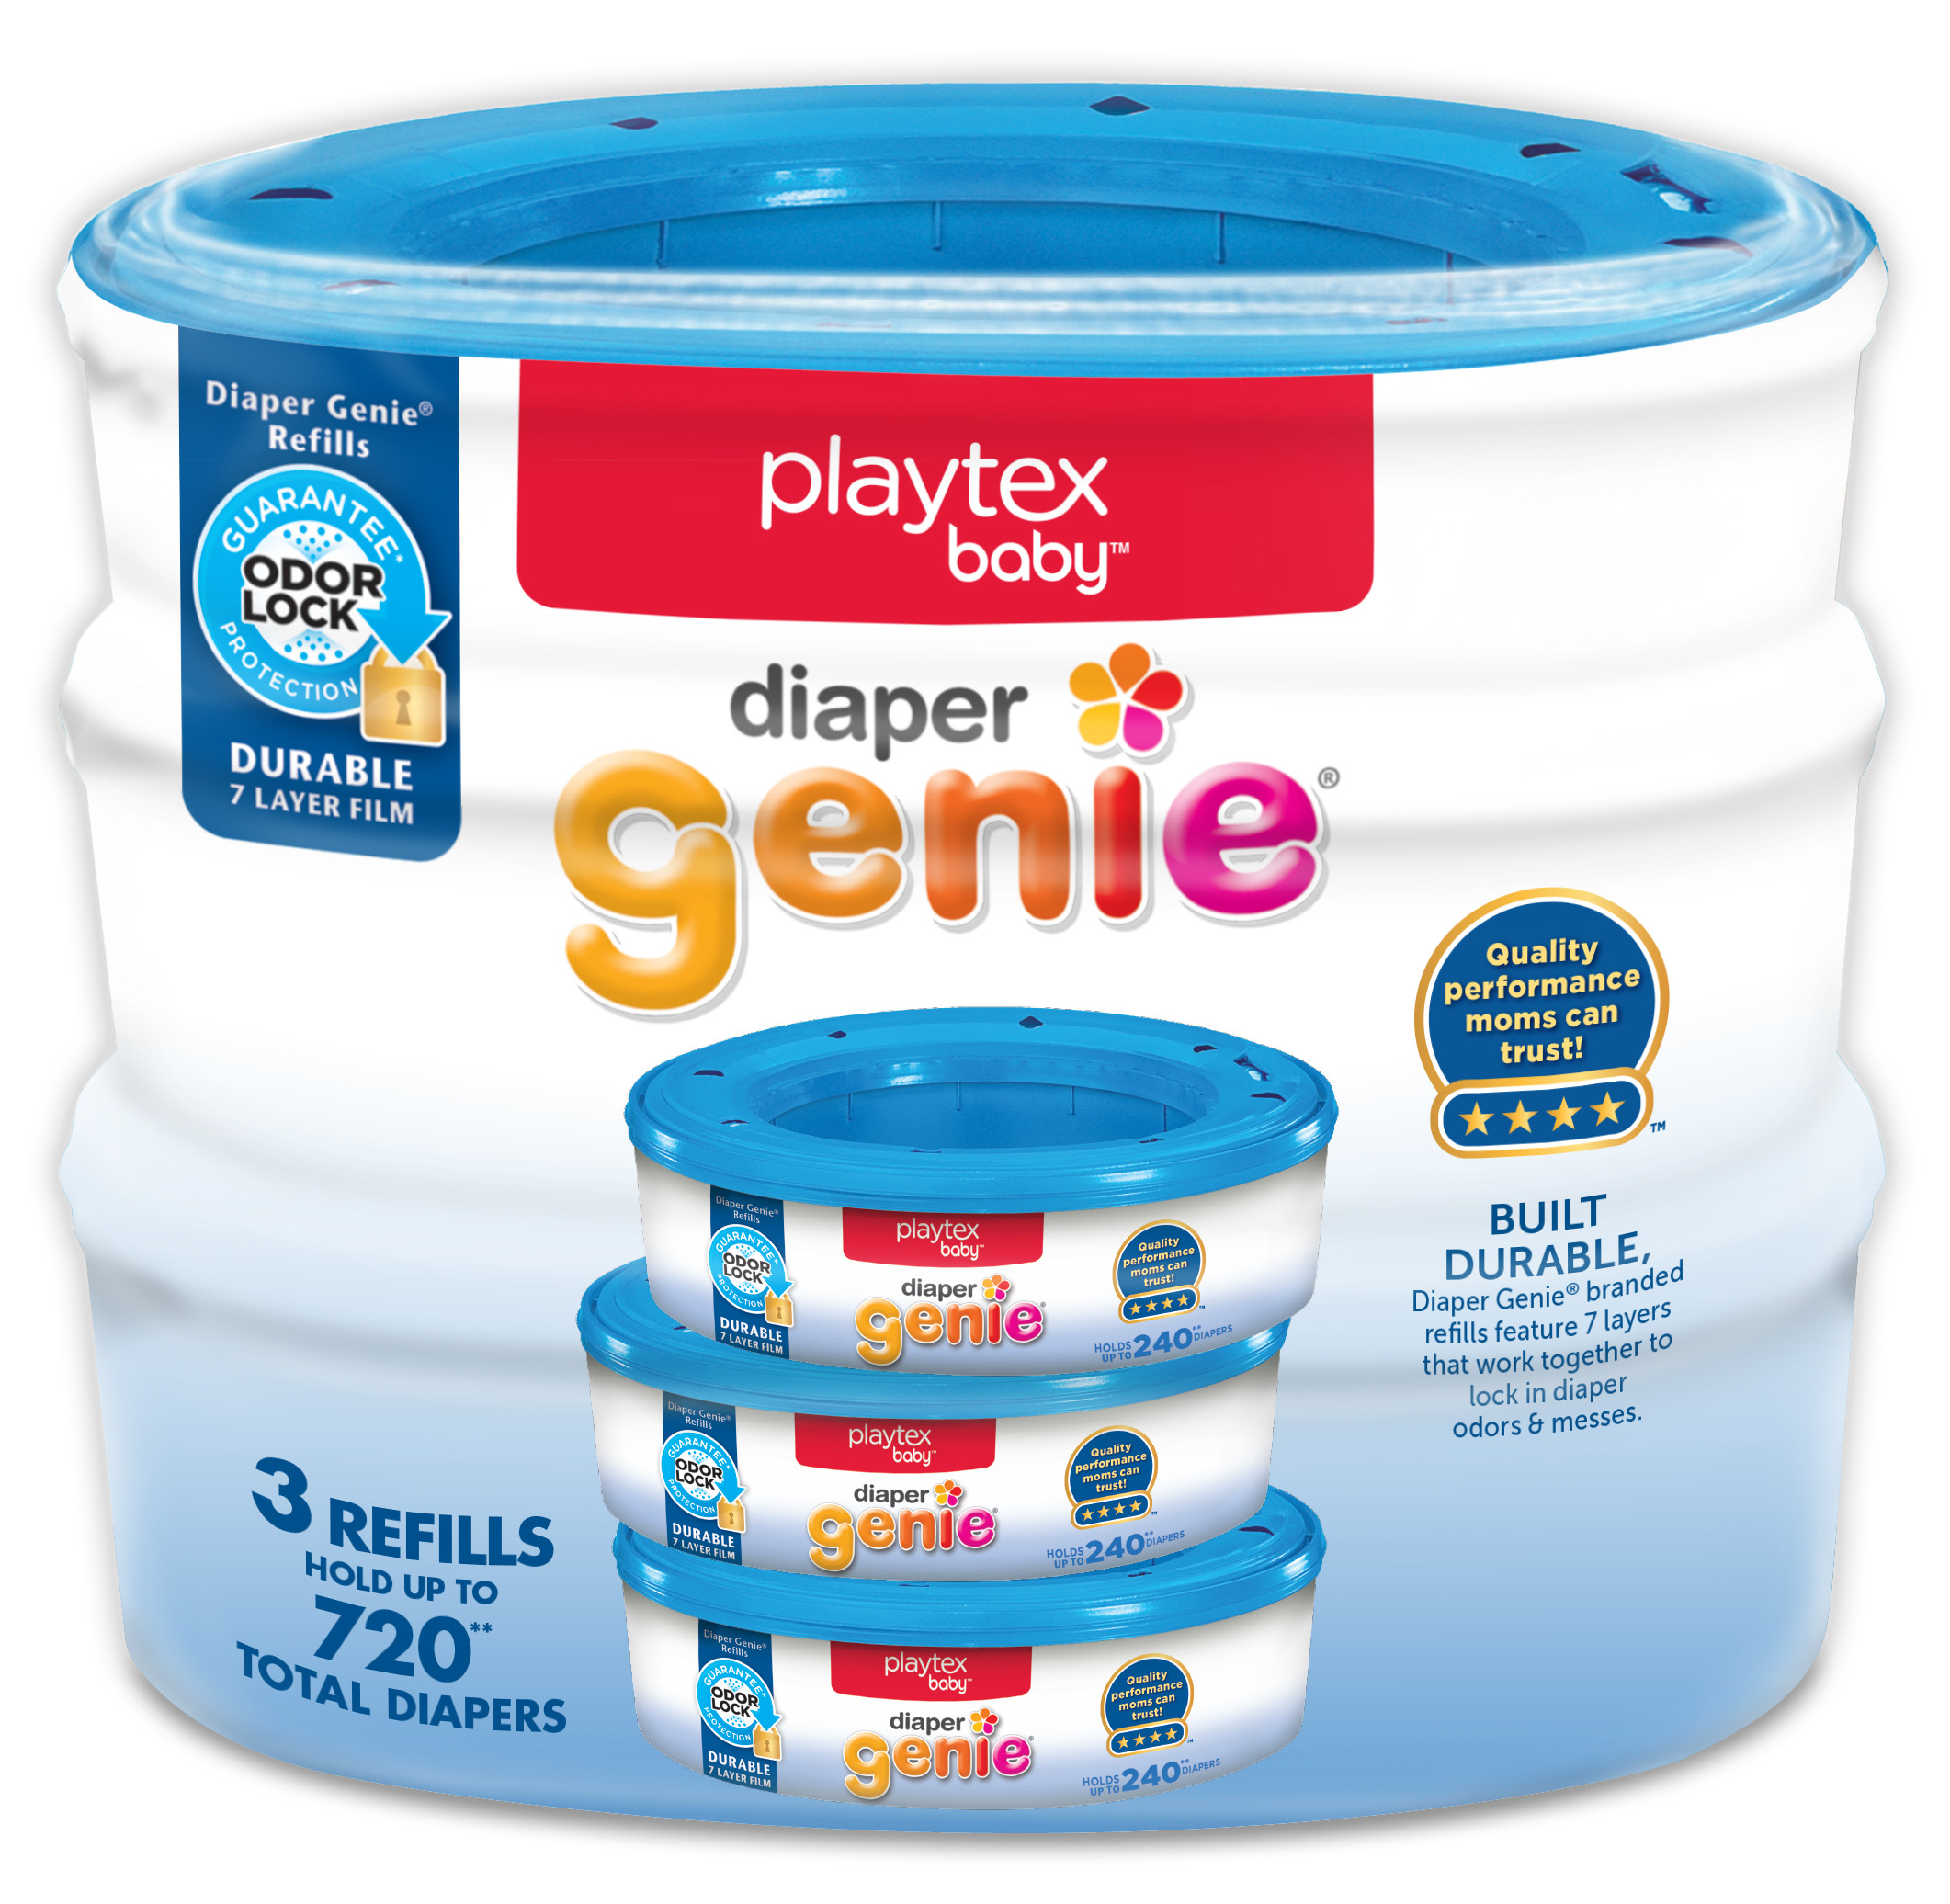 Playtex Diaper Genie Refills for Diaper Genie Diaper Pails - 3 Count